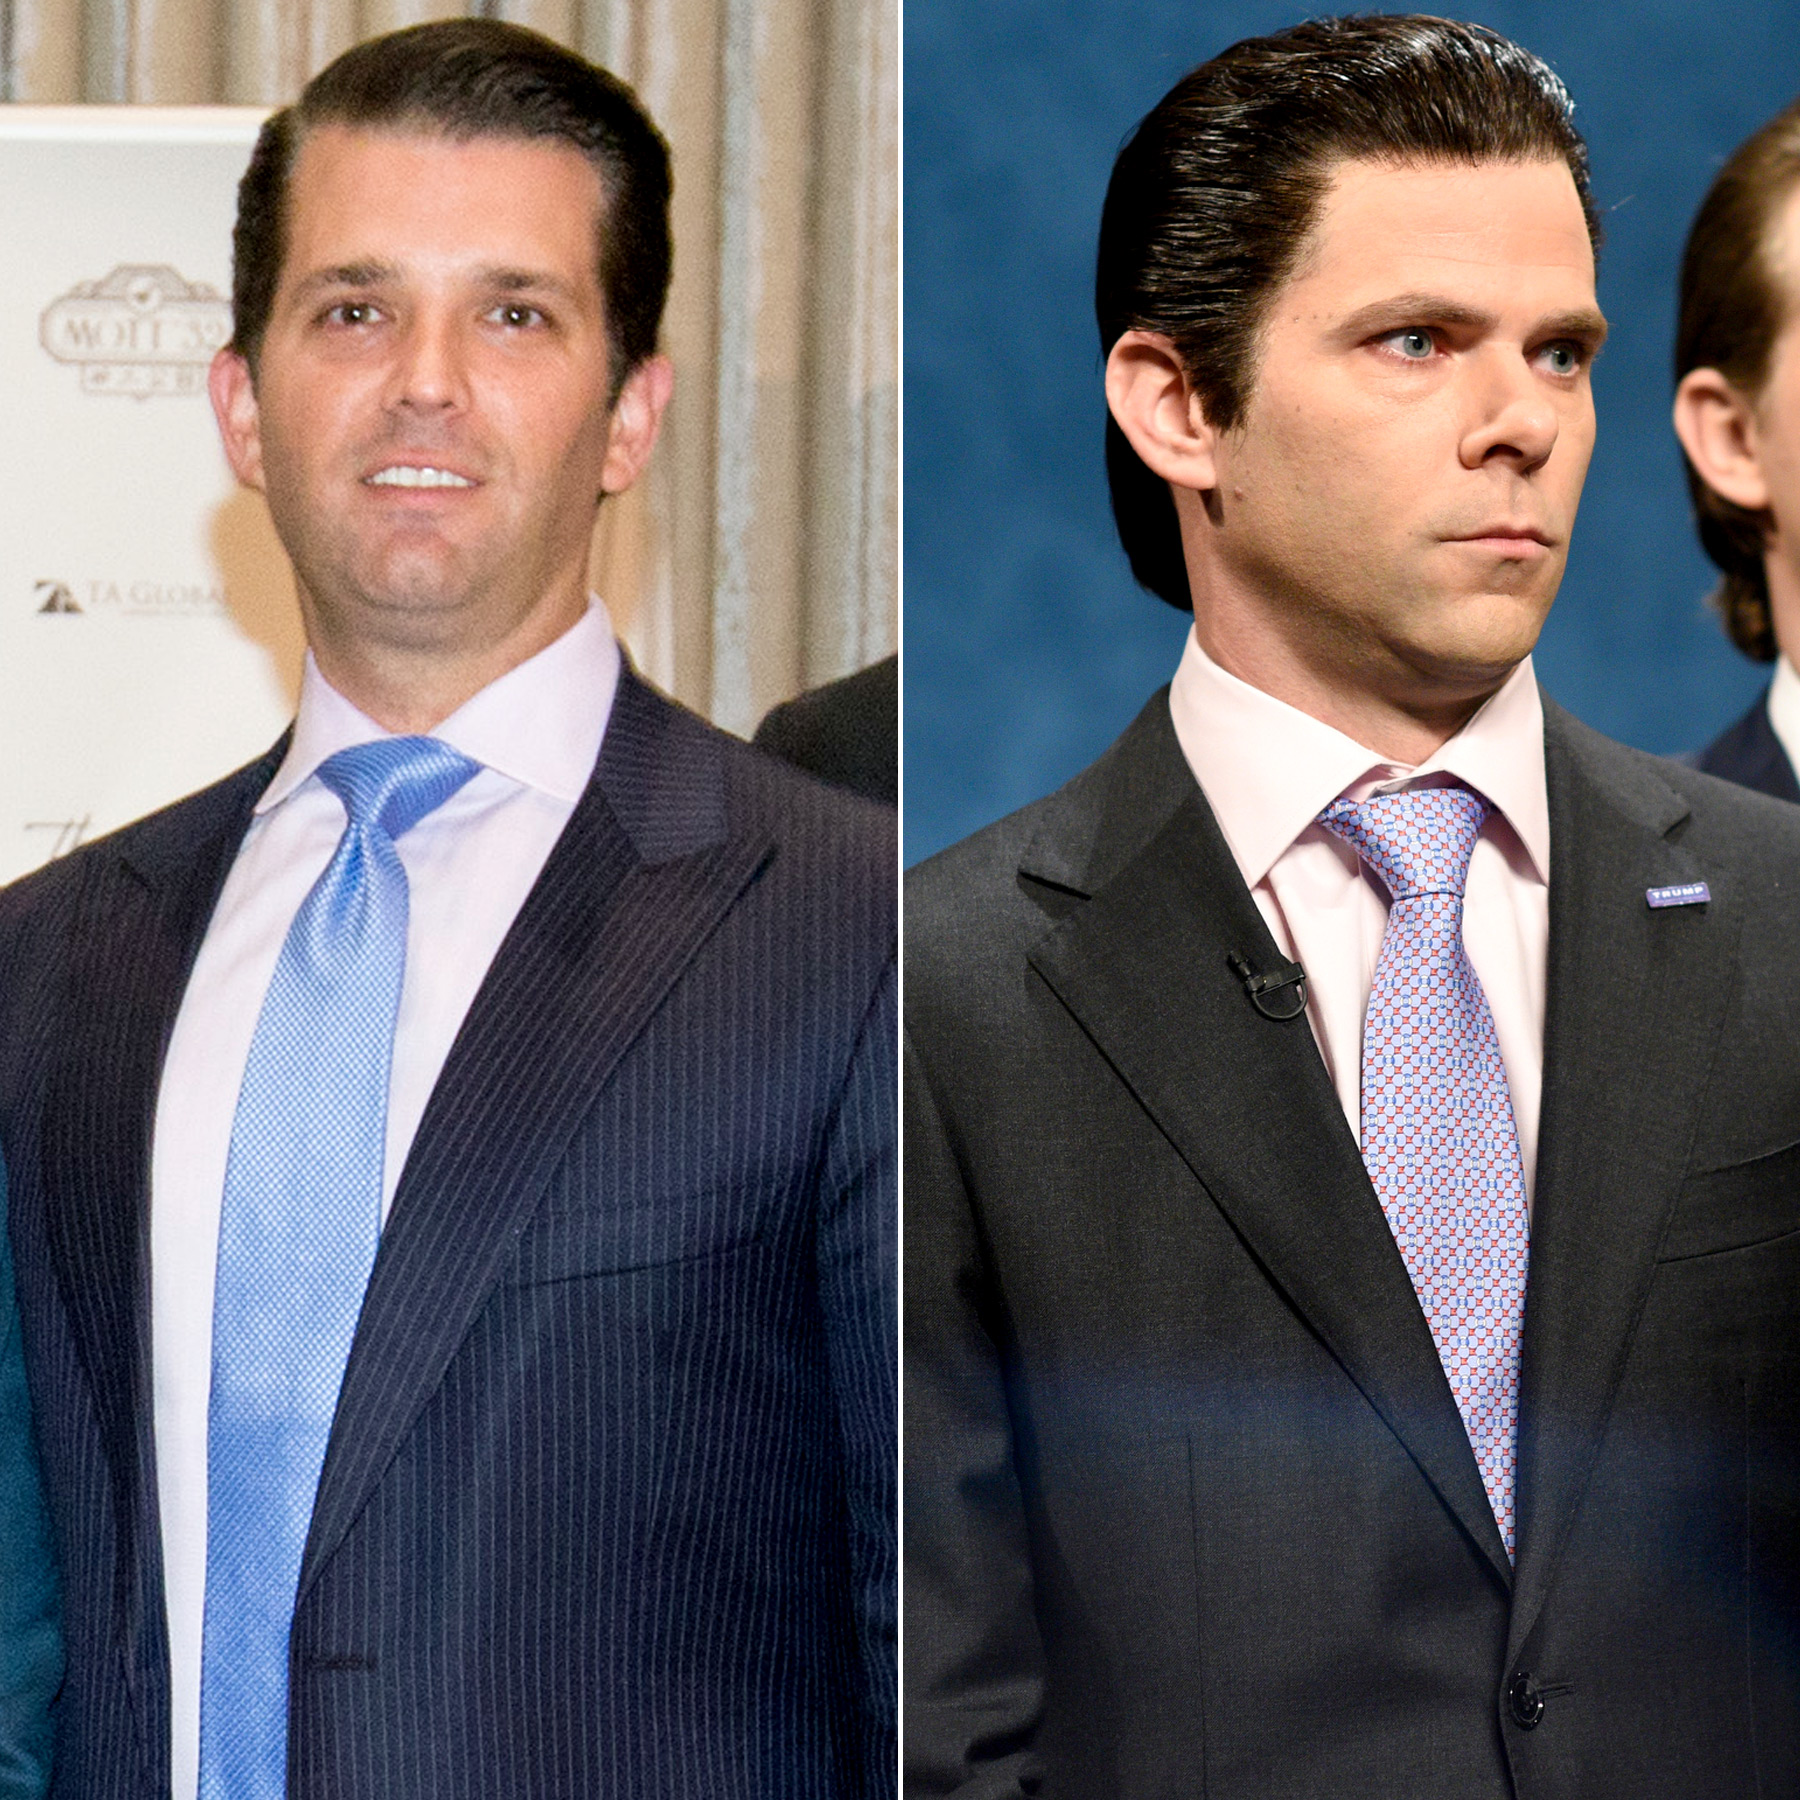 Trump Jr. and Mikey Day